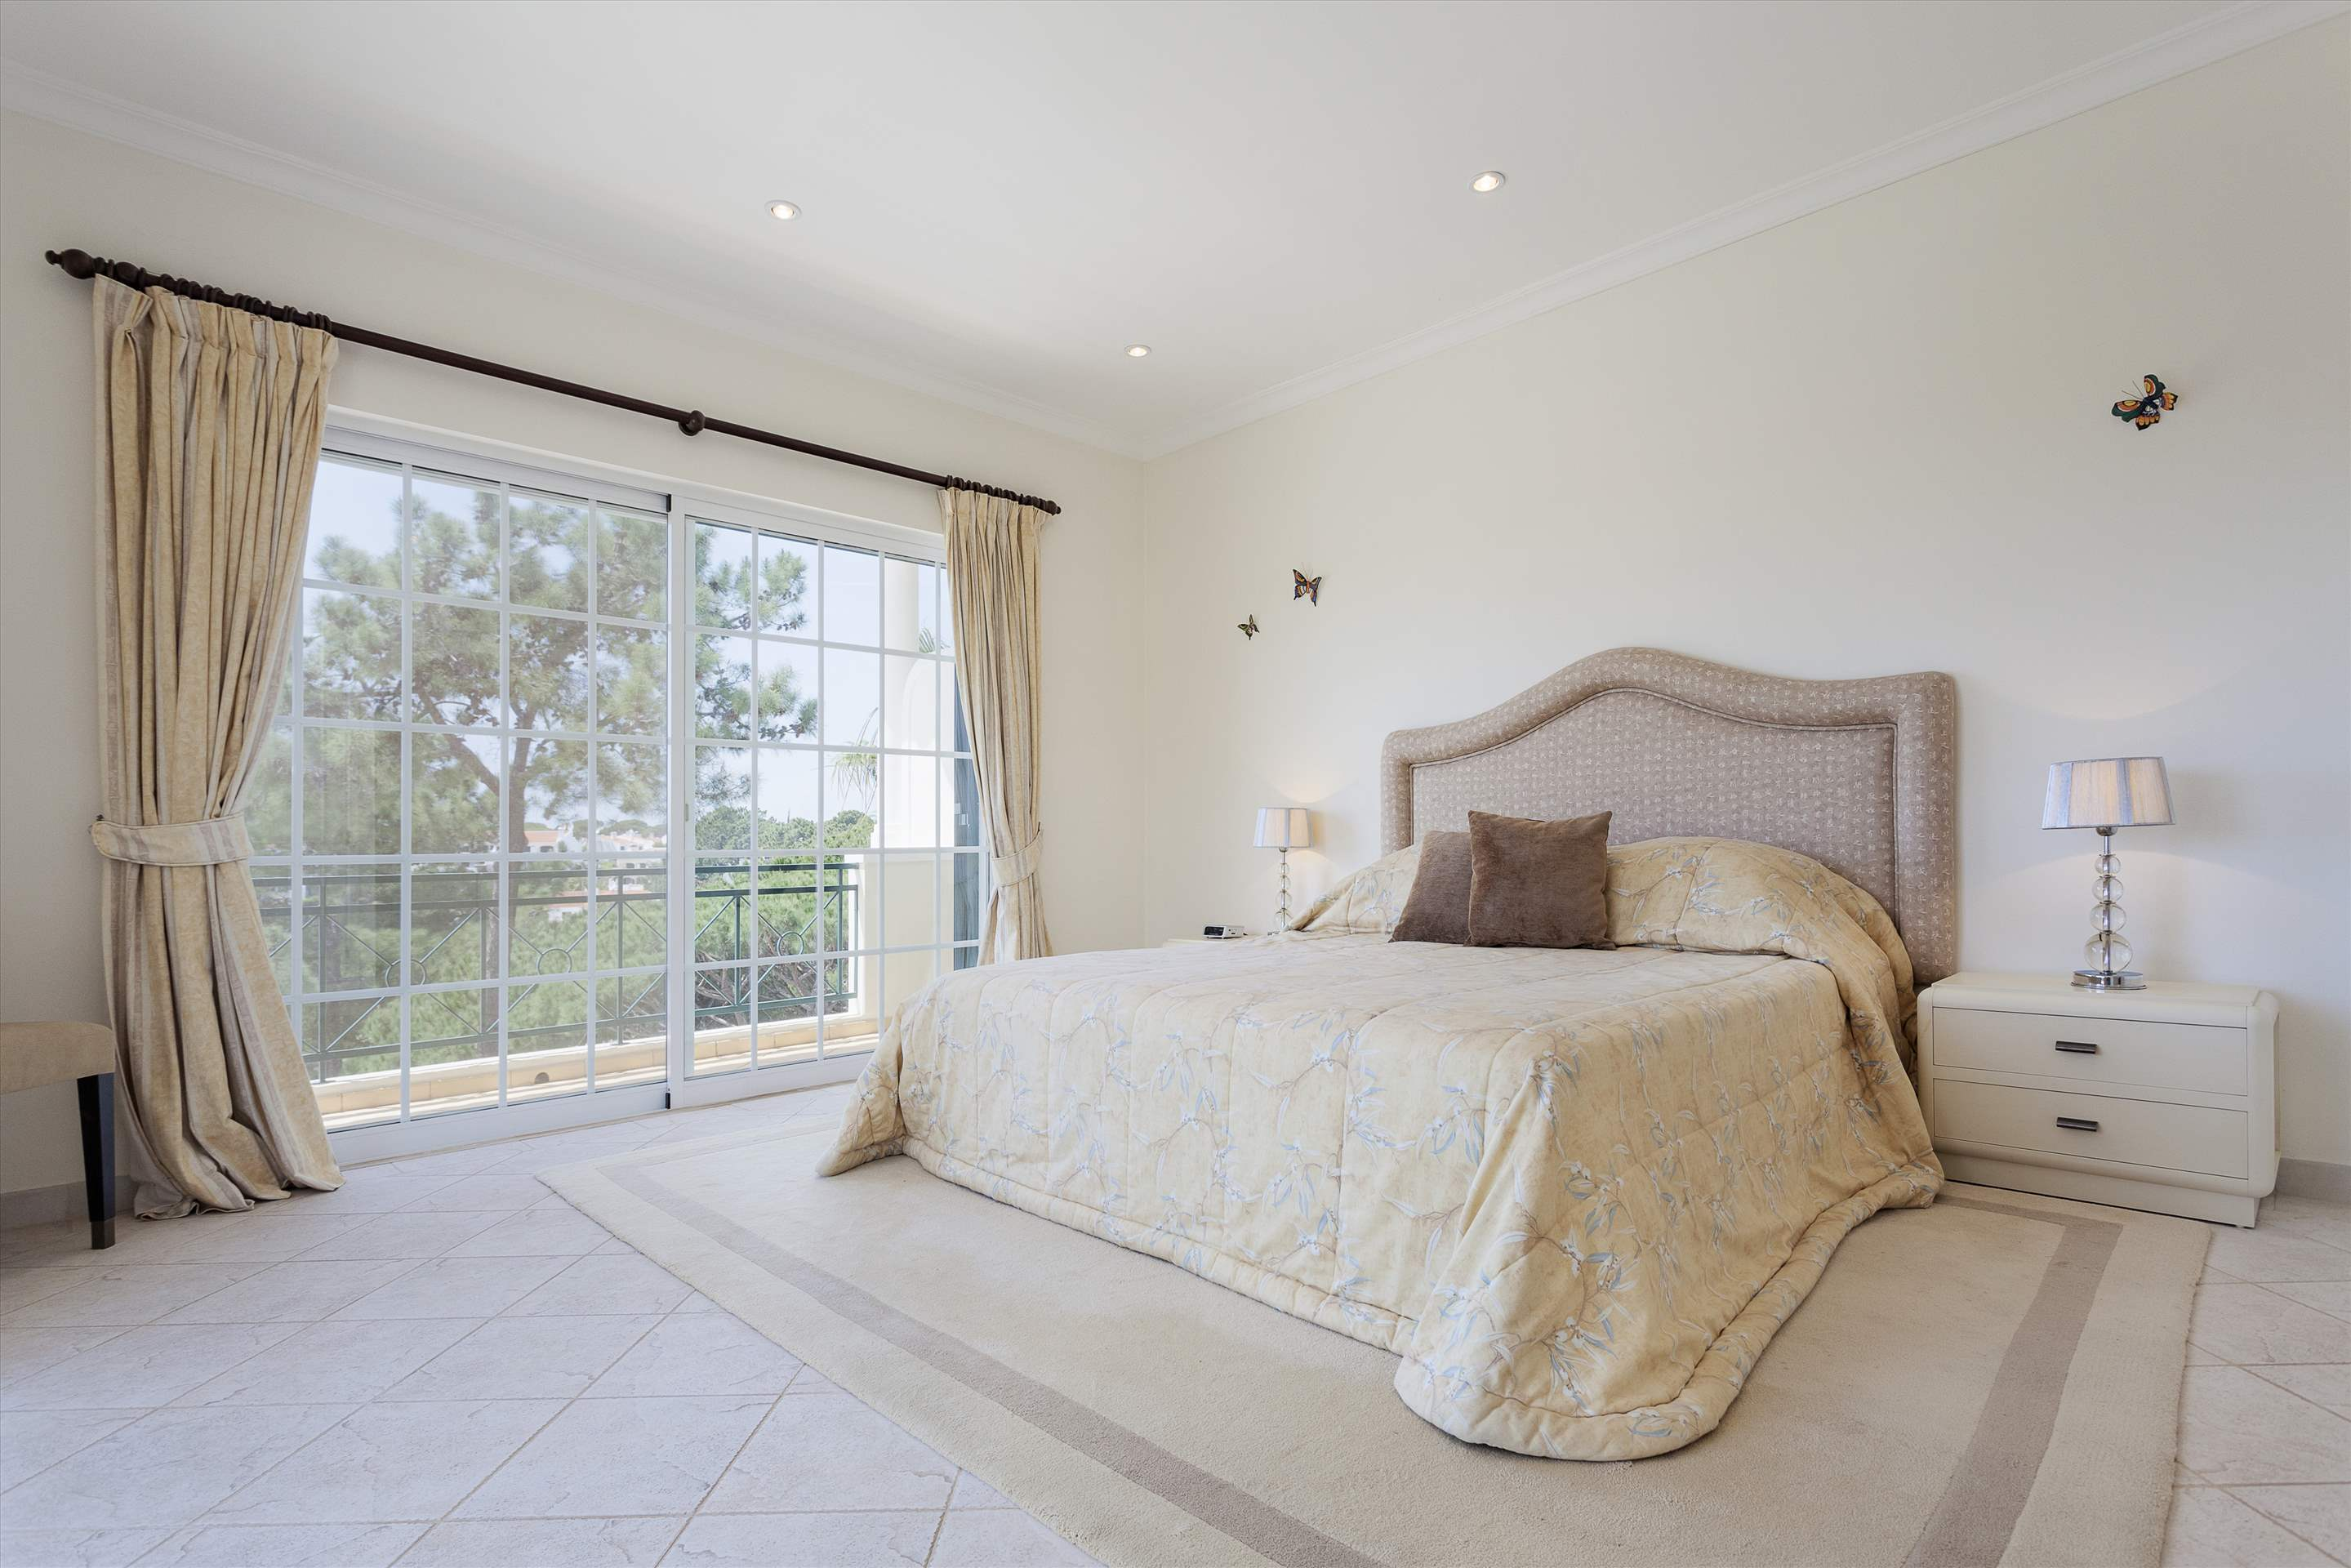 Apartment Romaine, 3 bedroom apartment in Vale do Lobo, Algarve Photo #9